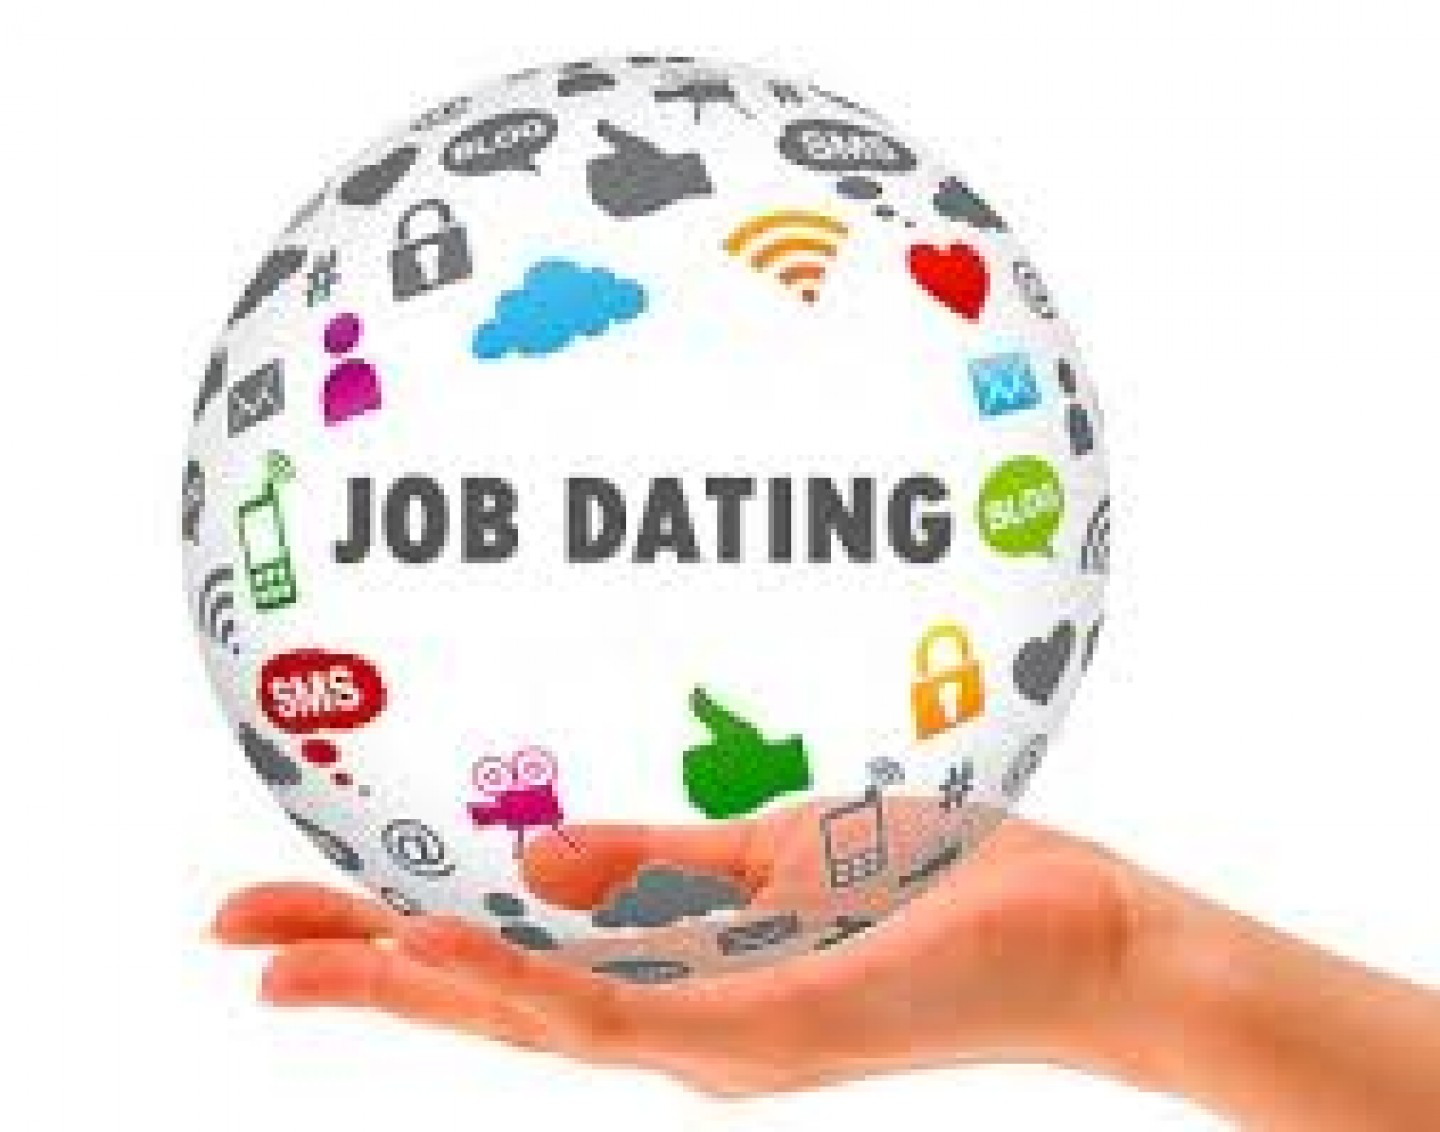 Jobdating